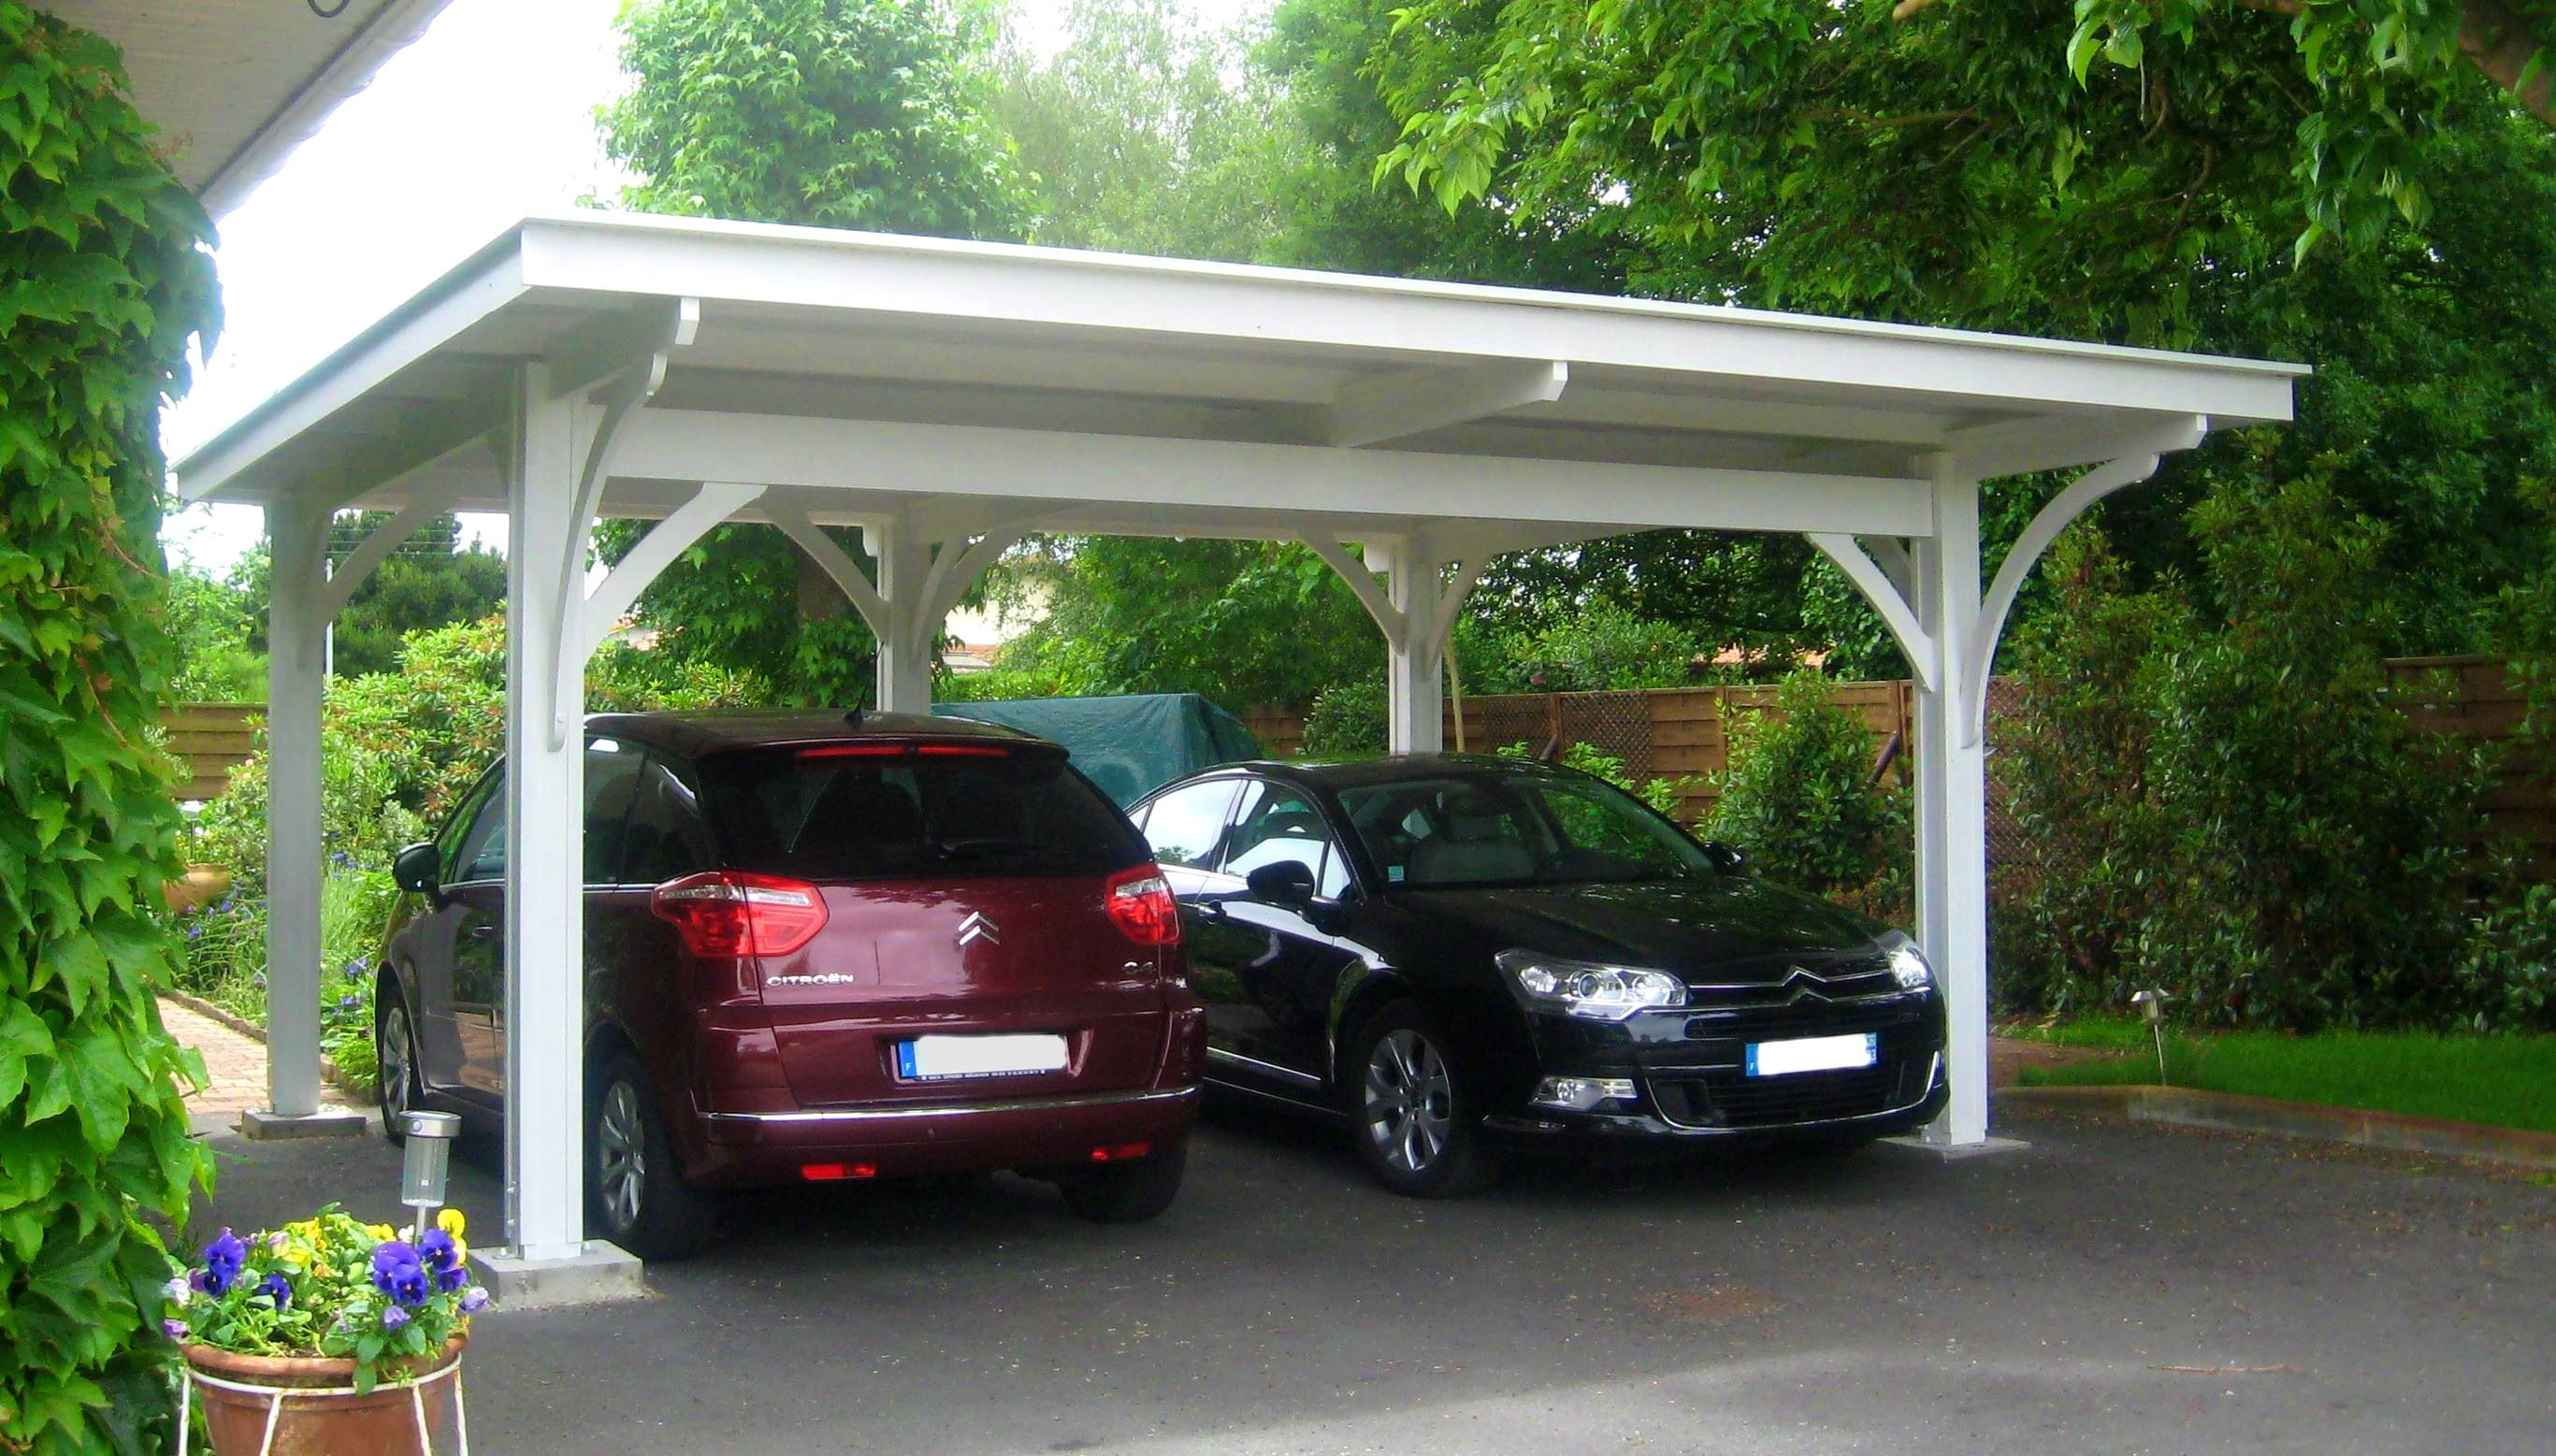 Cheap Carports Carport Garage Portable Carport Diy Carport Palram Carport Wood Carport House Carport Cheap With Images Carport Plans Pergola Carport Carport Designs